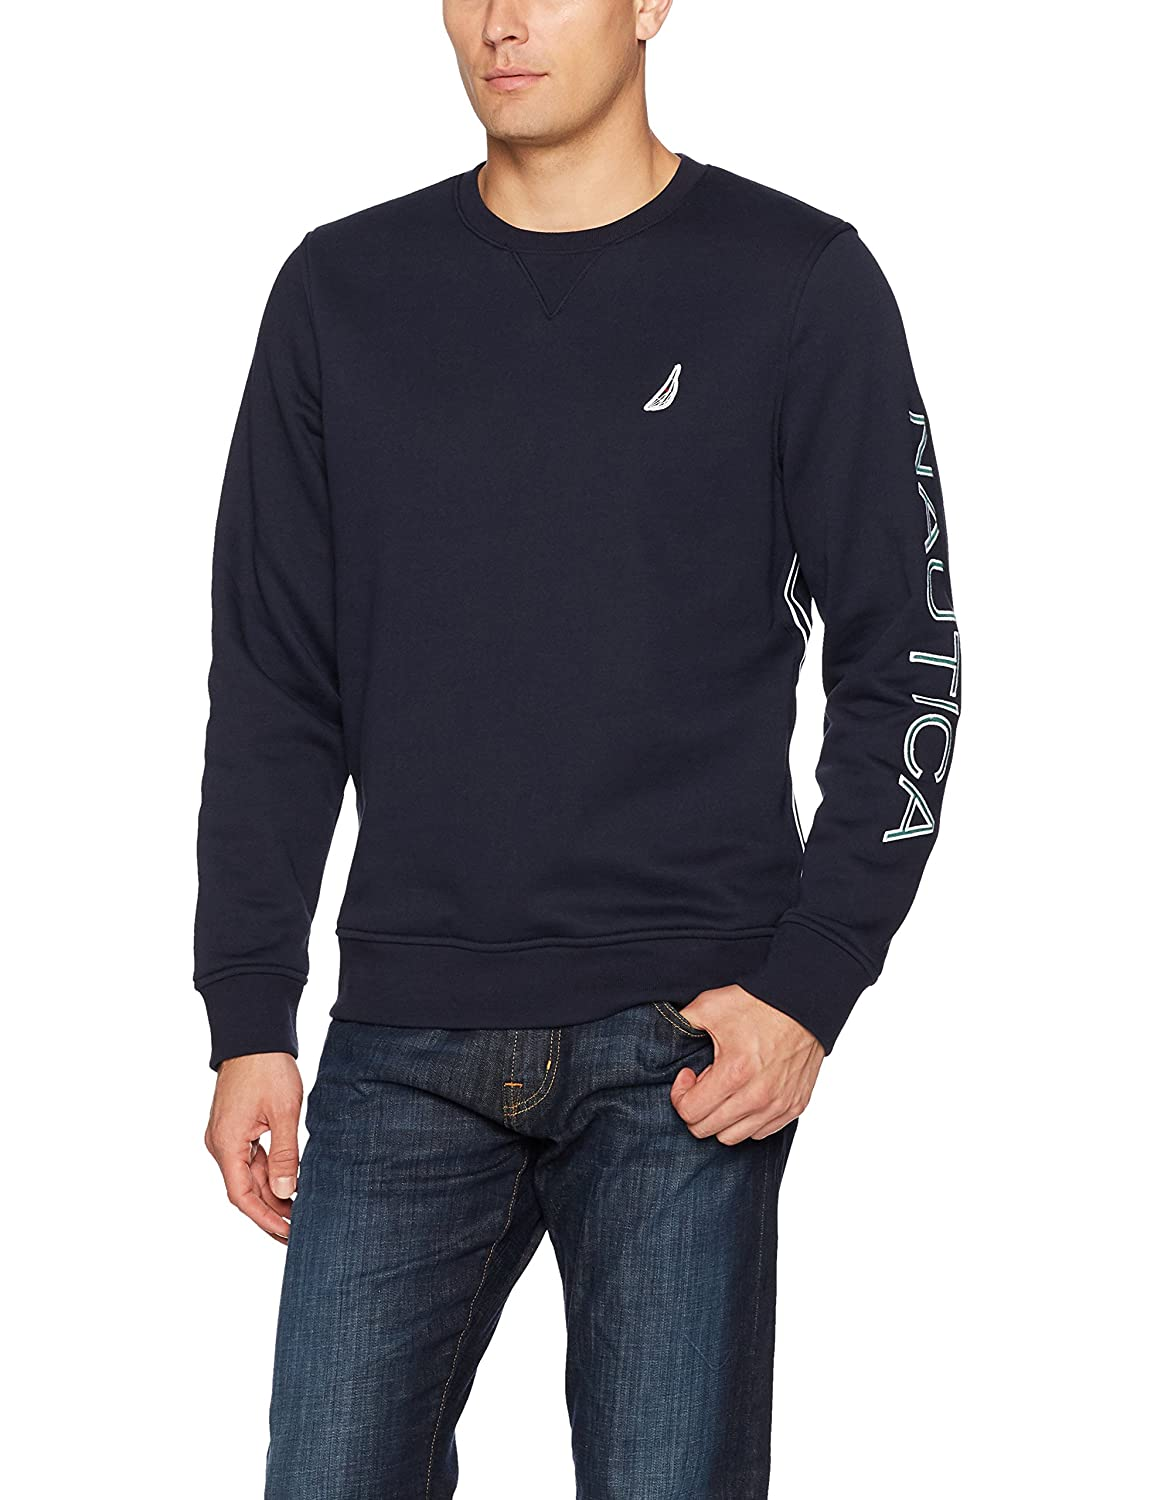 Nautica Men's Long Sleeve Tech Fleece Piece Dyed Crewneck Top K73374